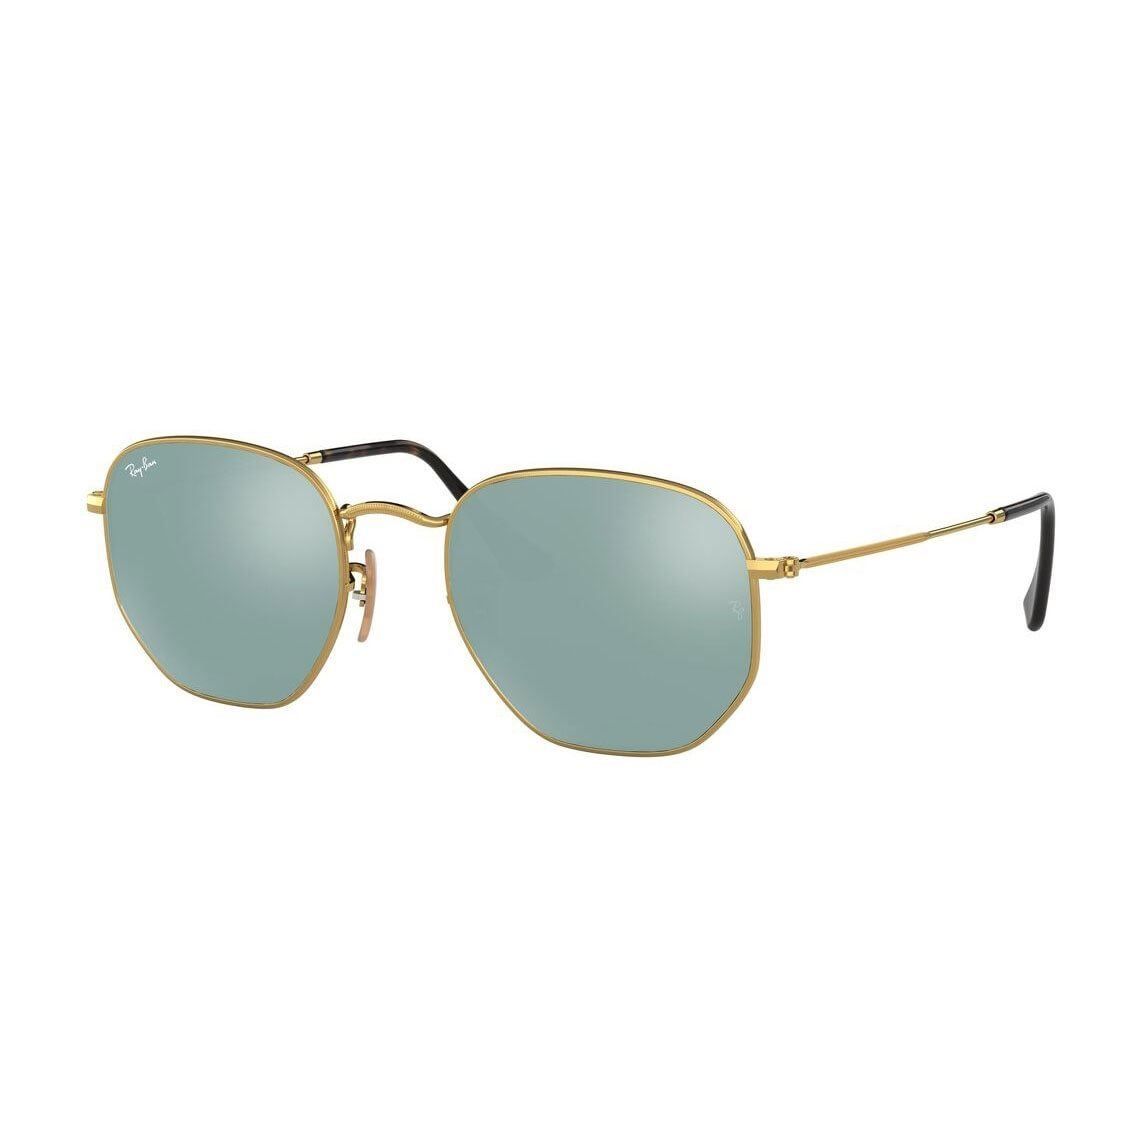 Ray-Ban Hexagonal flat lenses RB3548N 001/30 48